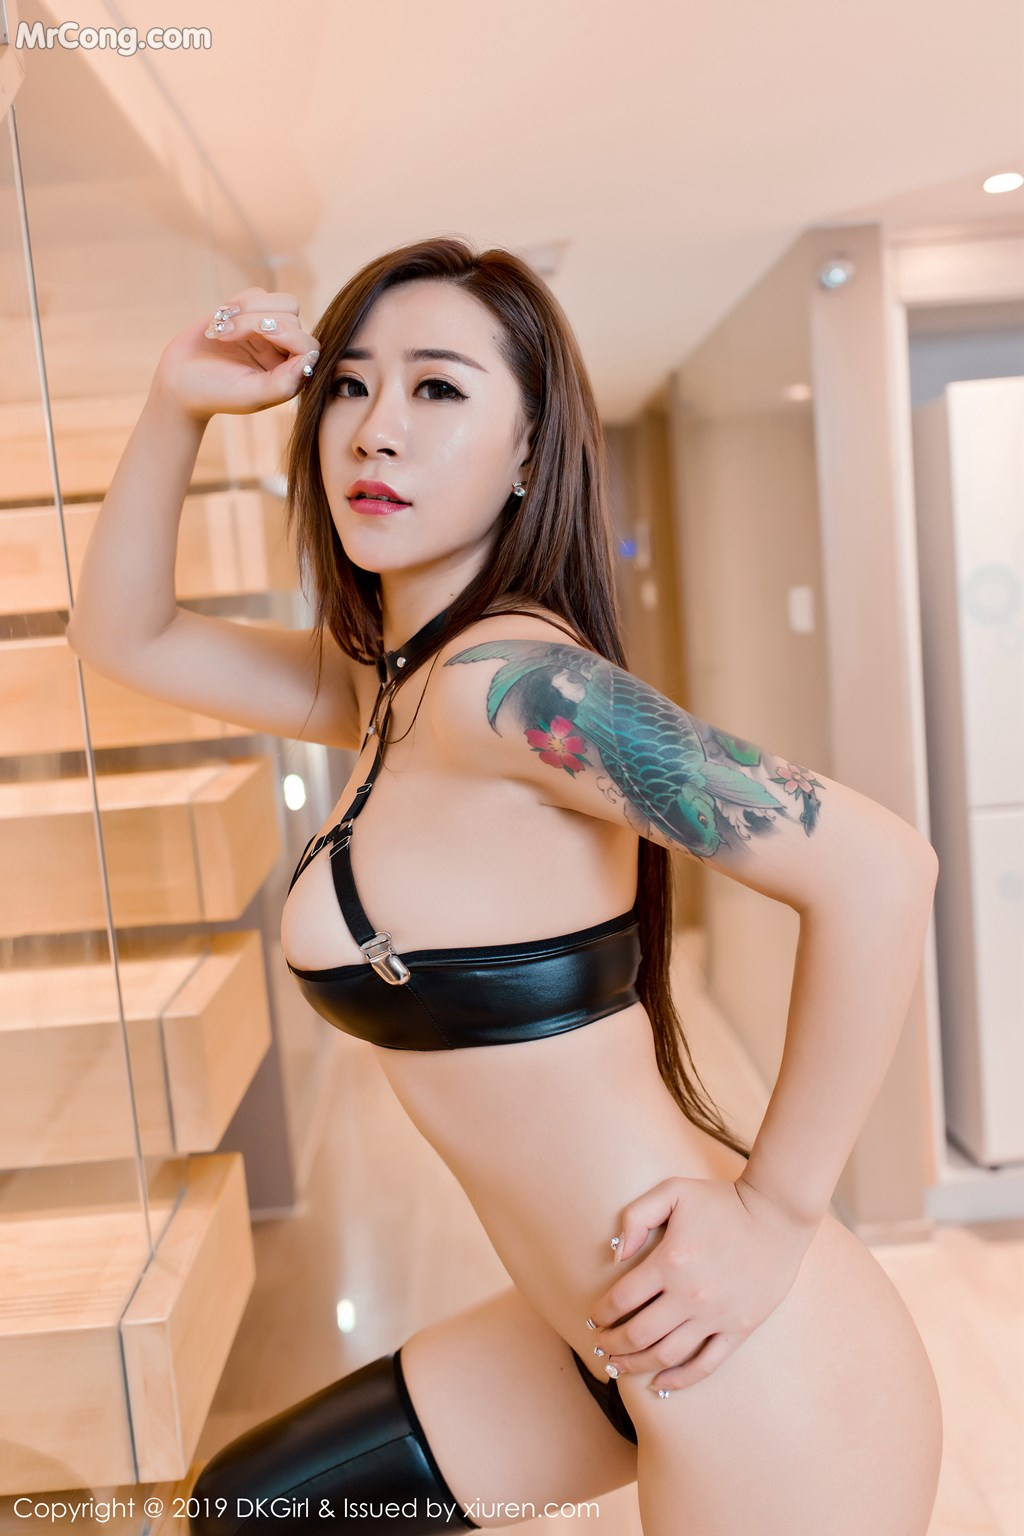 Image DKGirl-Vol.109-Cier-MrCong.com-018 in post DKGirl Vol.109: 雪儿Cier (49 ảnh)